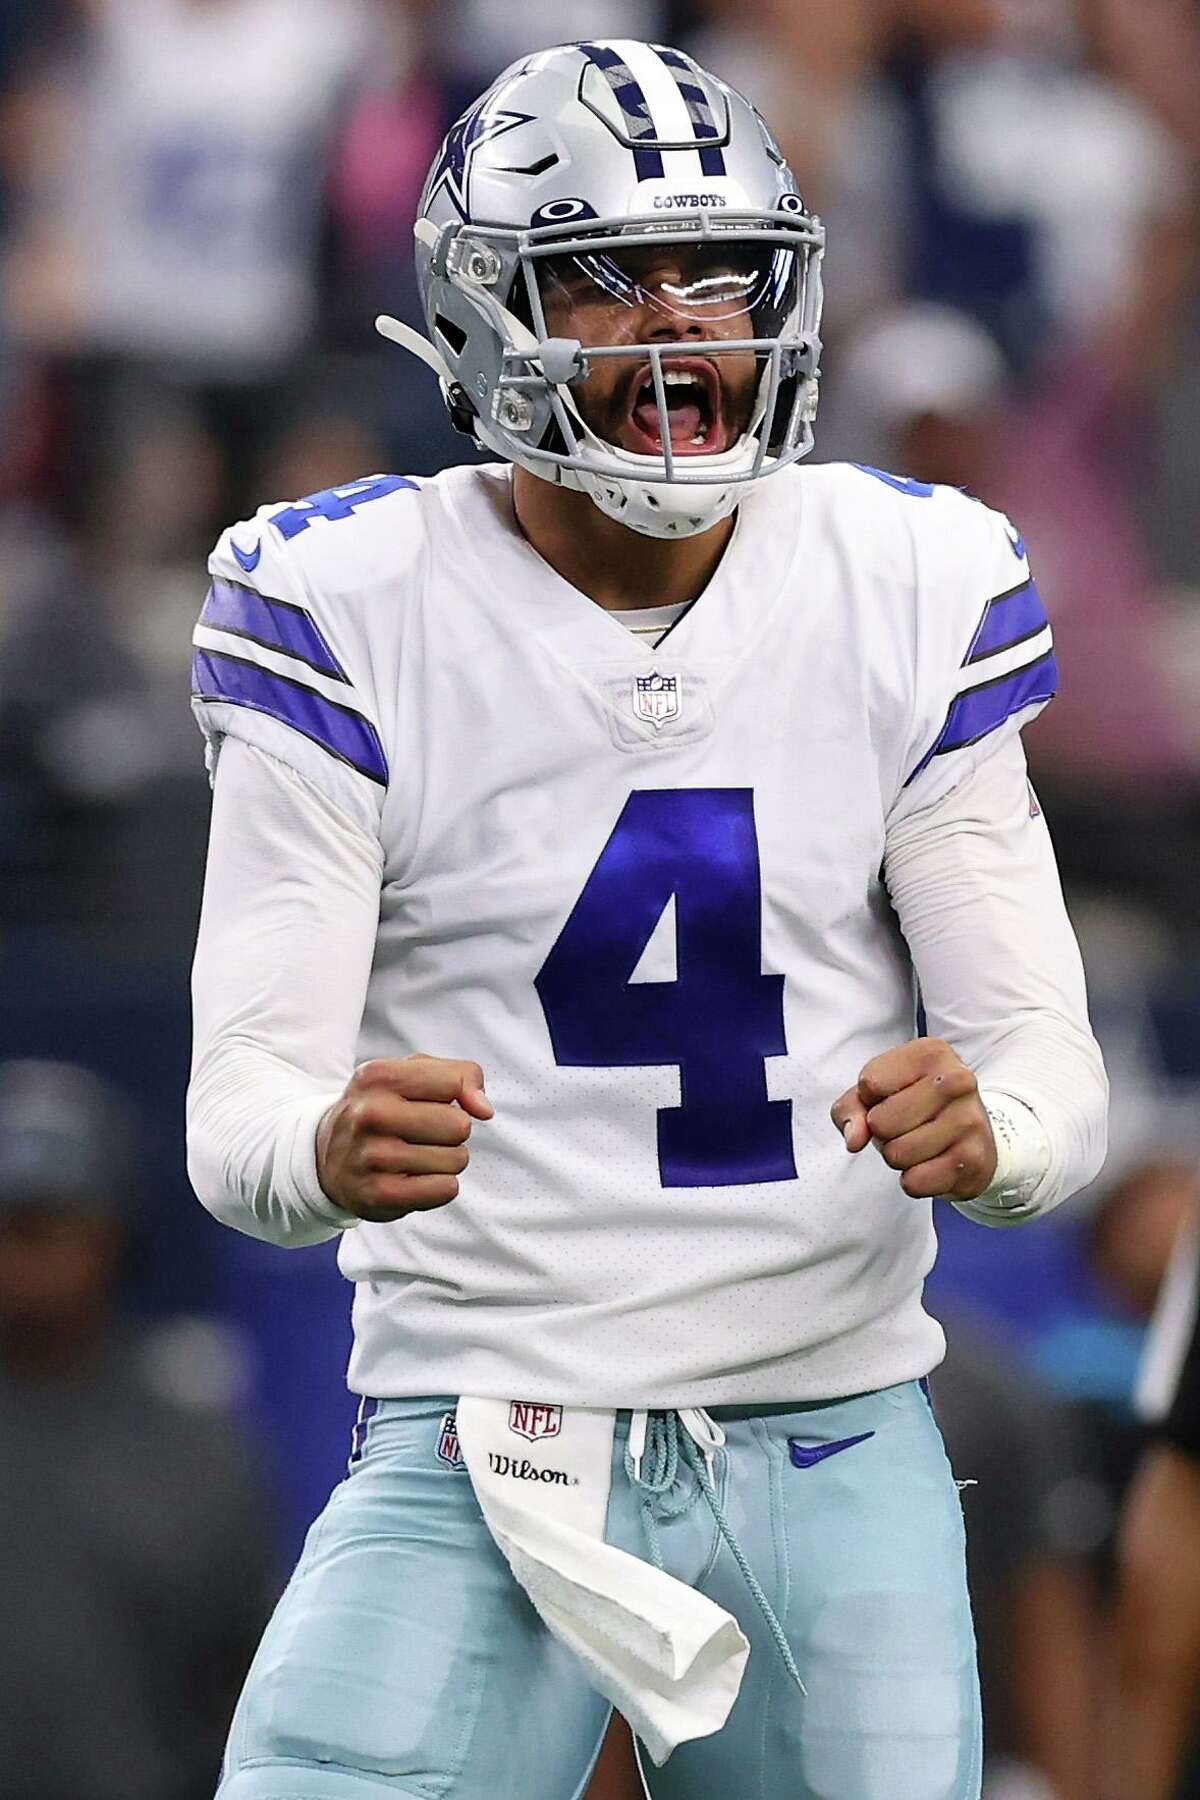 ARLINGTON, TEXAS - OCTOBER 03: Dak Prescott #4 of the Dallas Cowboys celebrates a touchdown during the second quarter against the Carolina Panthers at AT&T Stadium on October 03, 2021 in Arlington, Texas. (Photo by Tom Pennington/Getty Images)